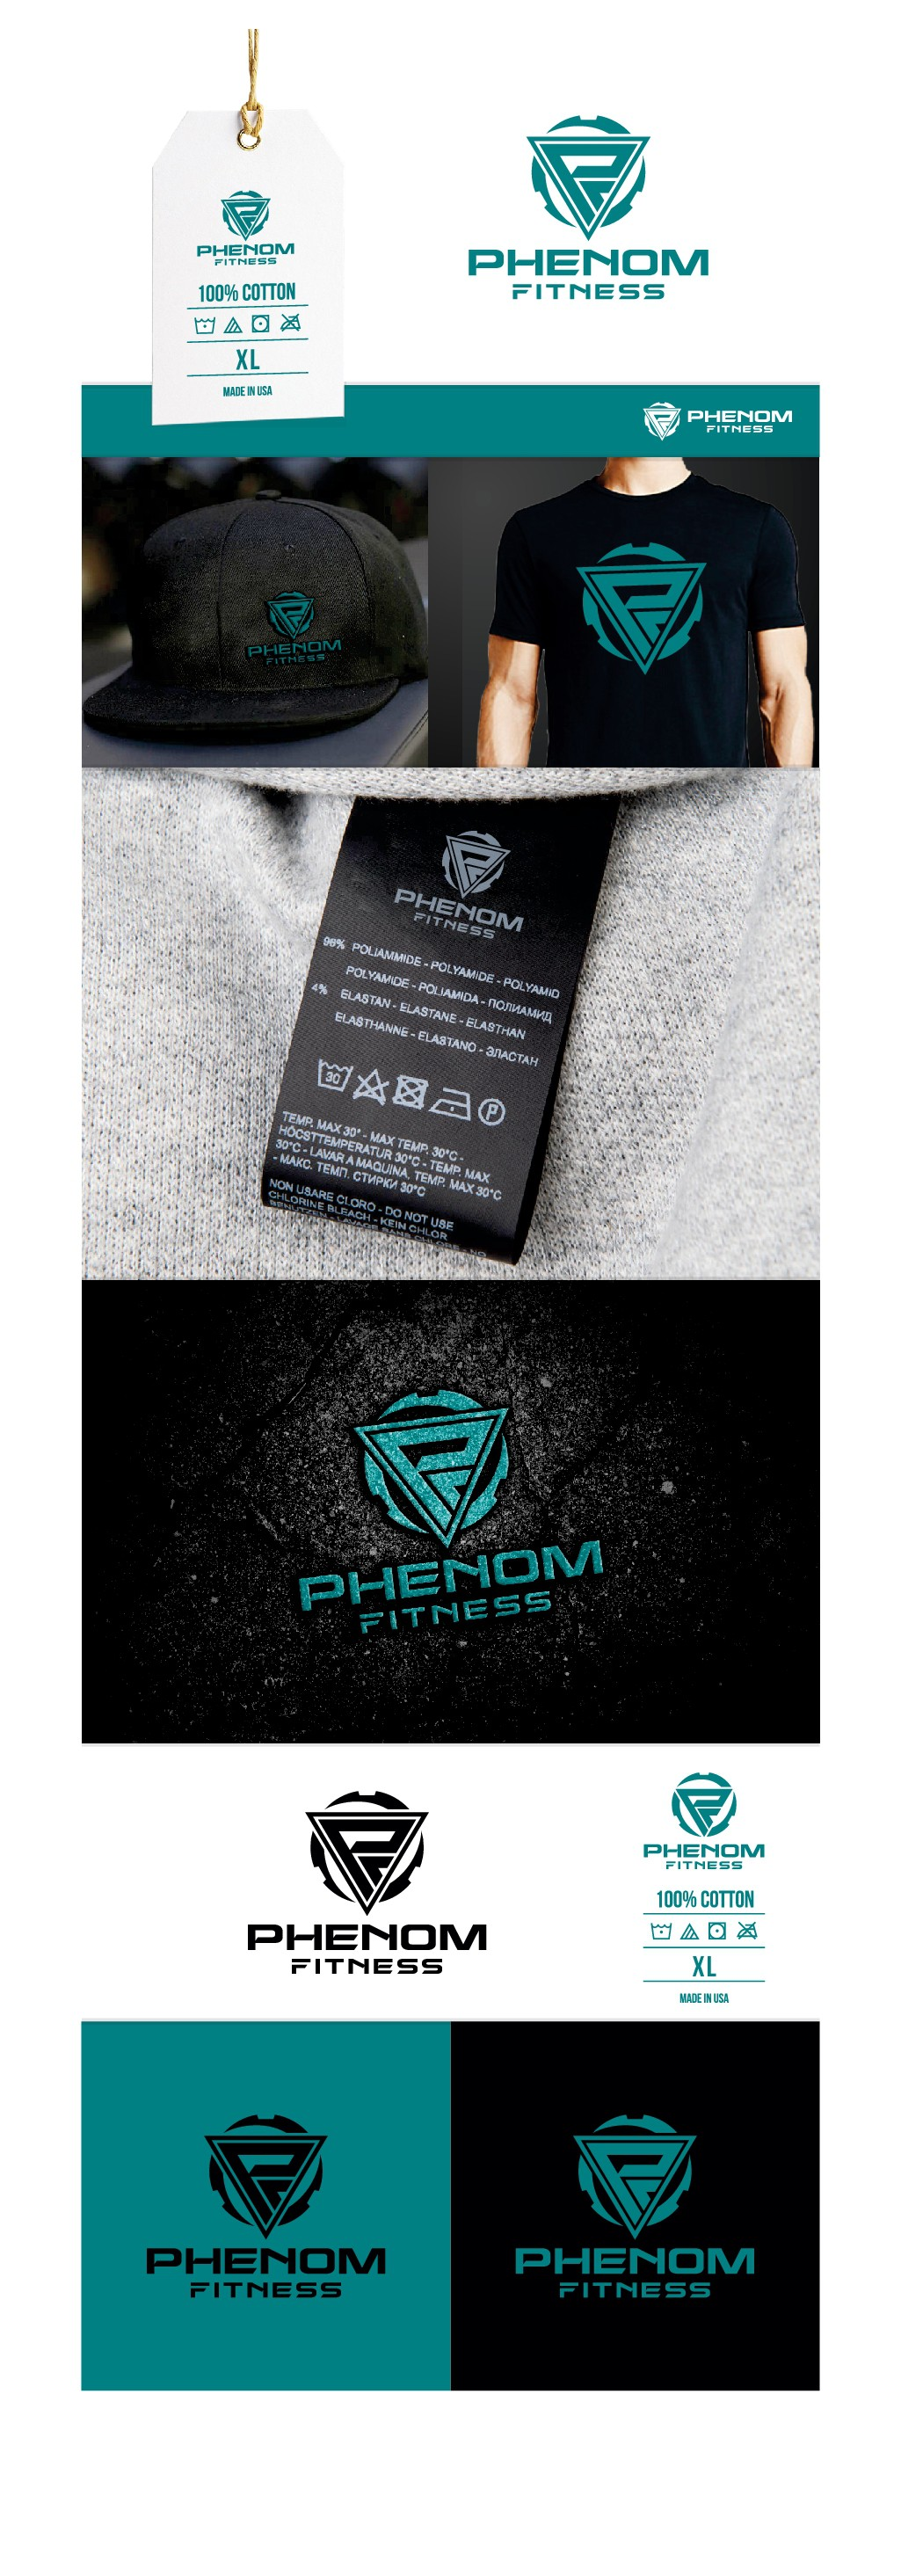 Design the logo for the Phenom Fitness apparel launch!